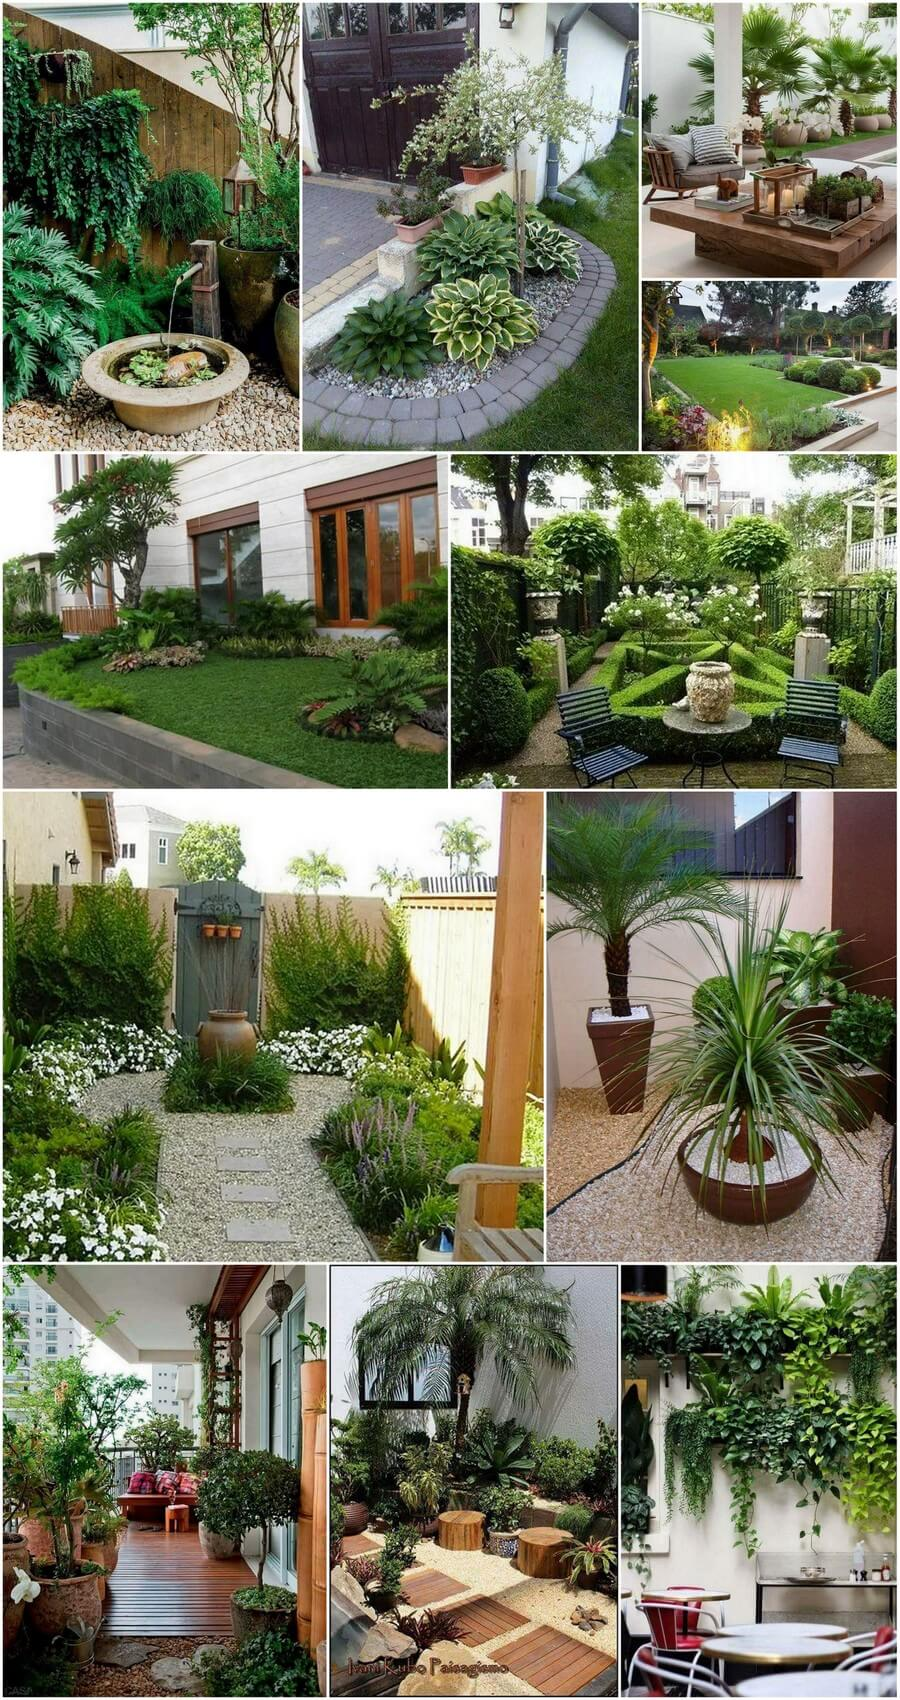 Homedecor&Garden ideas